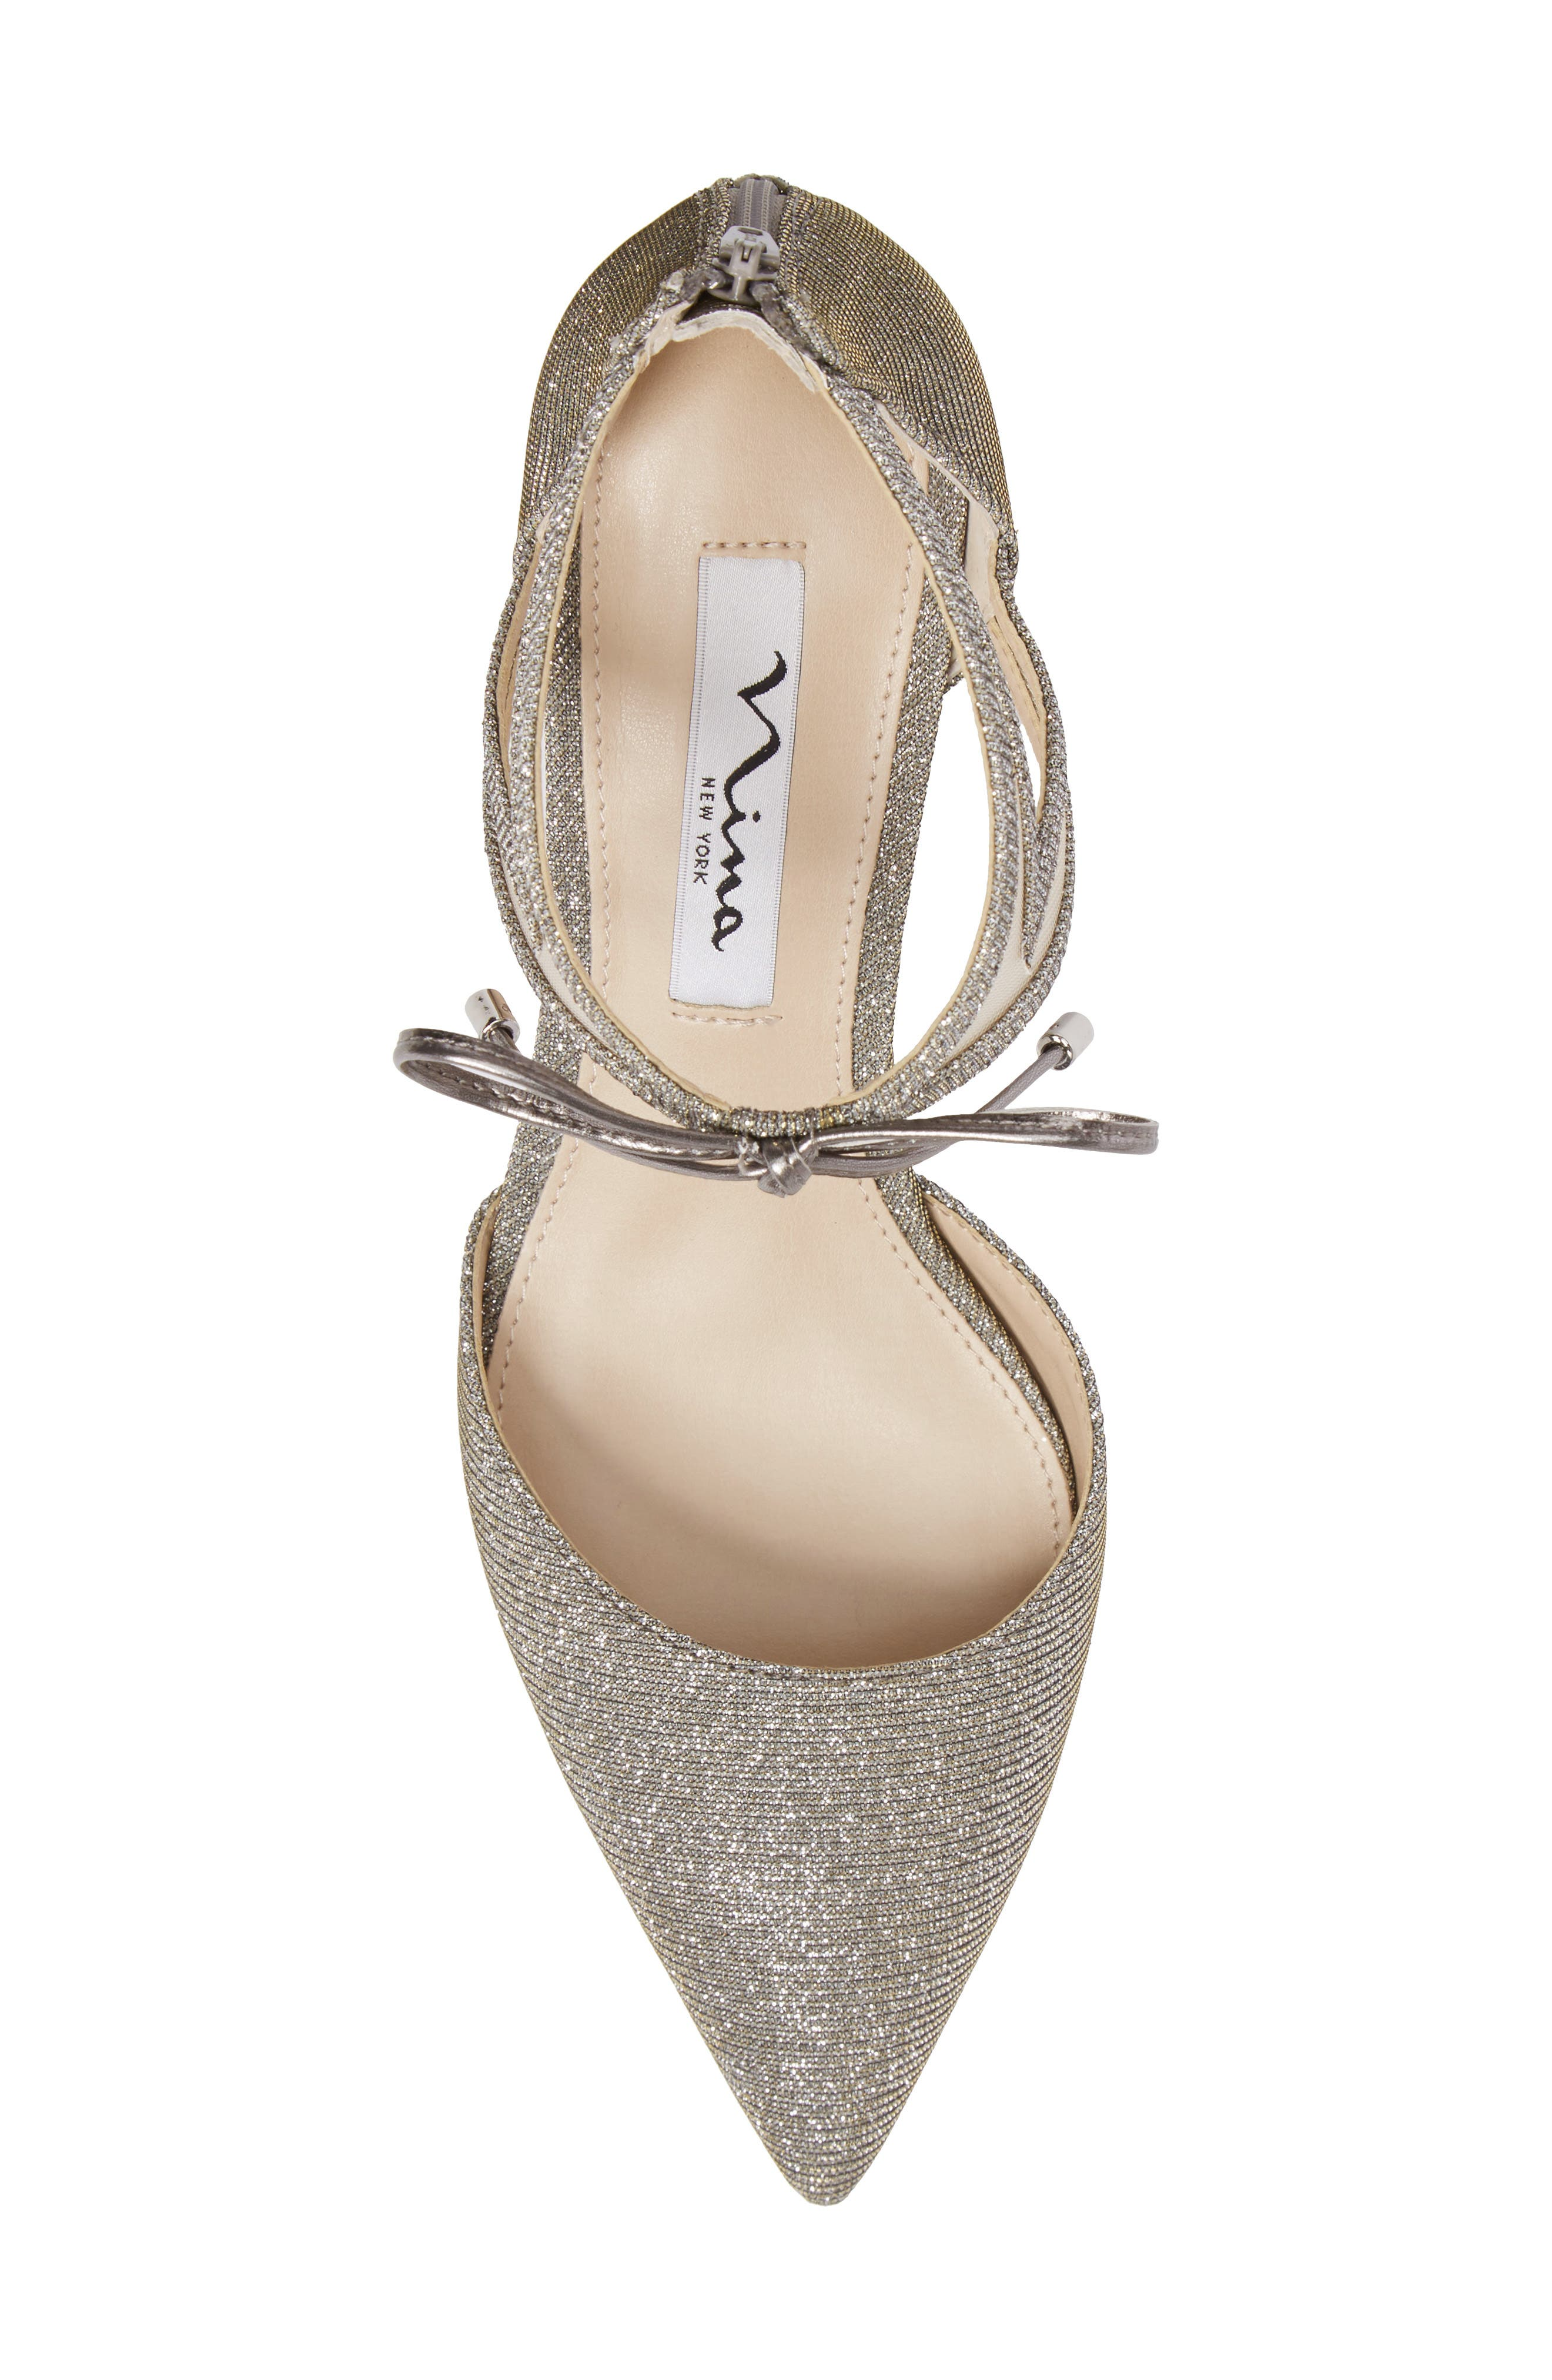 Talley Pointy Toe Pump,                             Alternate thumbnail 5, color,                             Steel/ Champ Metallic Fabric